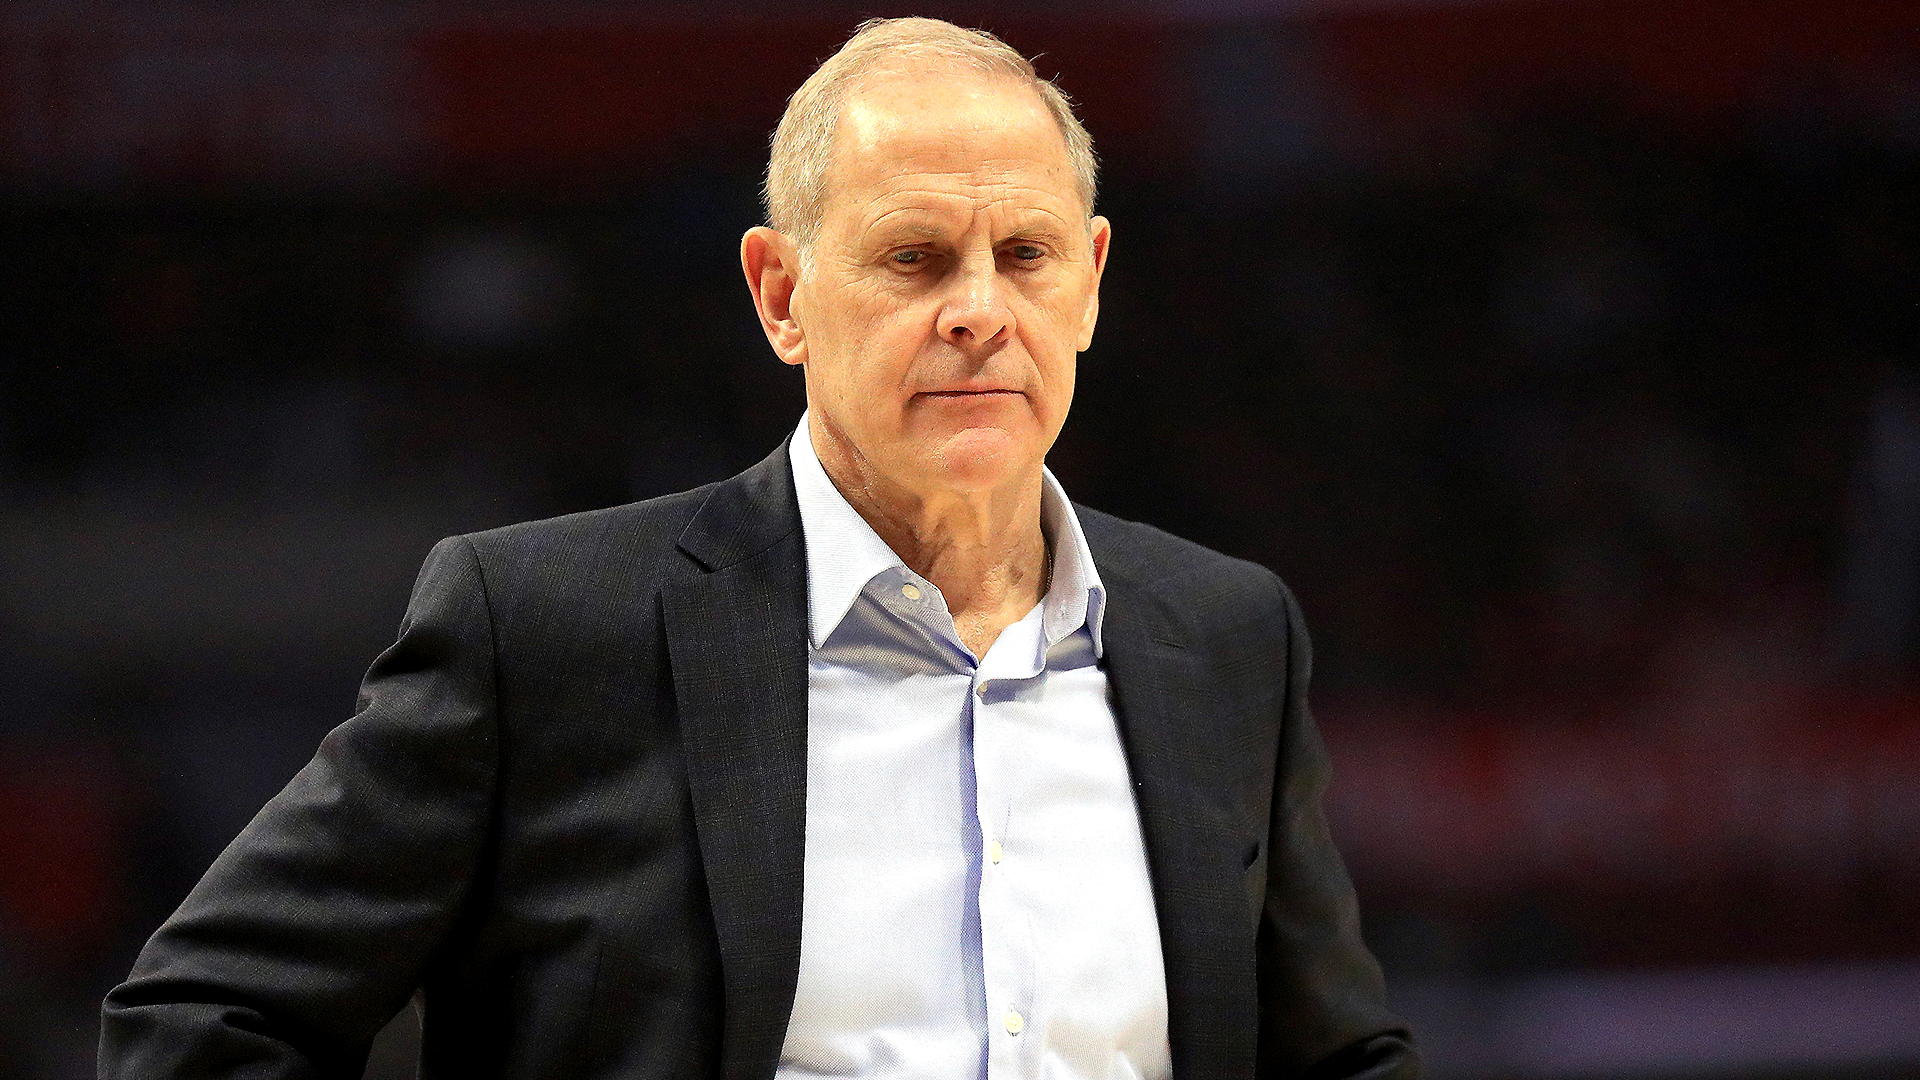 Cavs players mocked coach John Beilein by playing 'thug' songs, per report